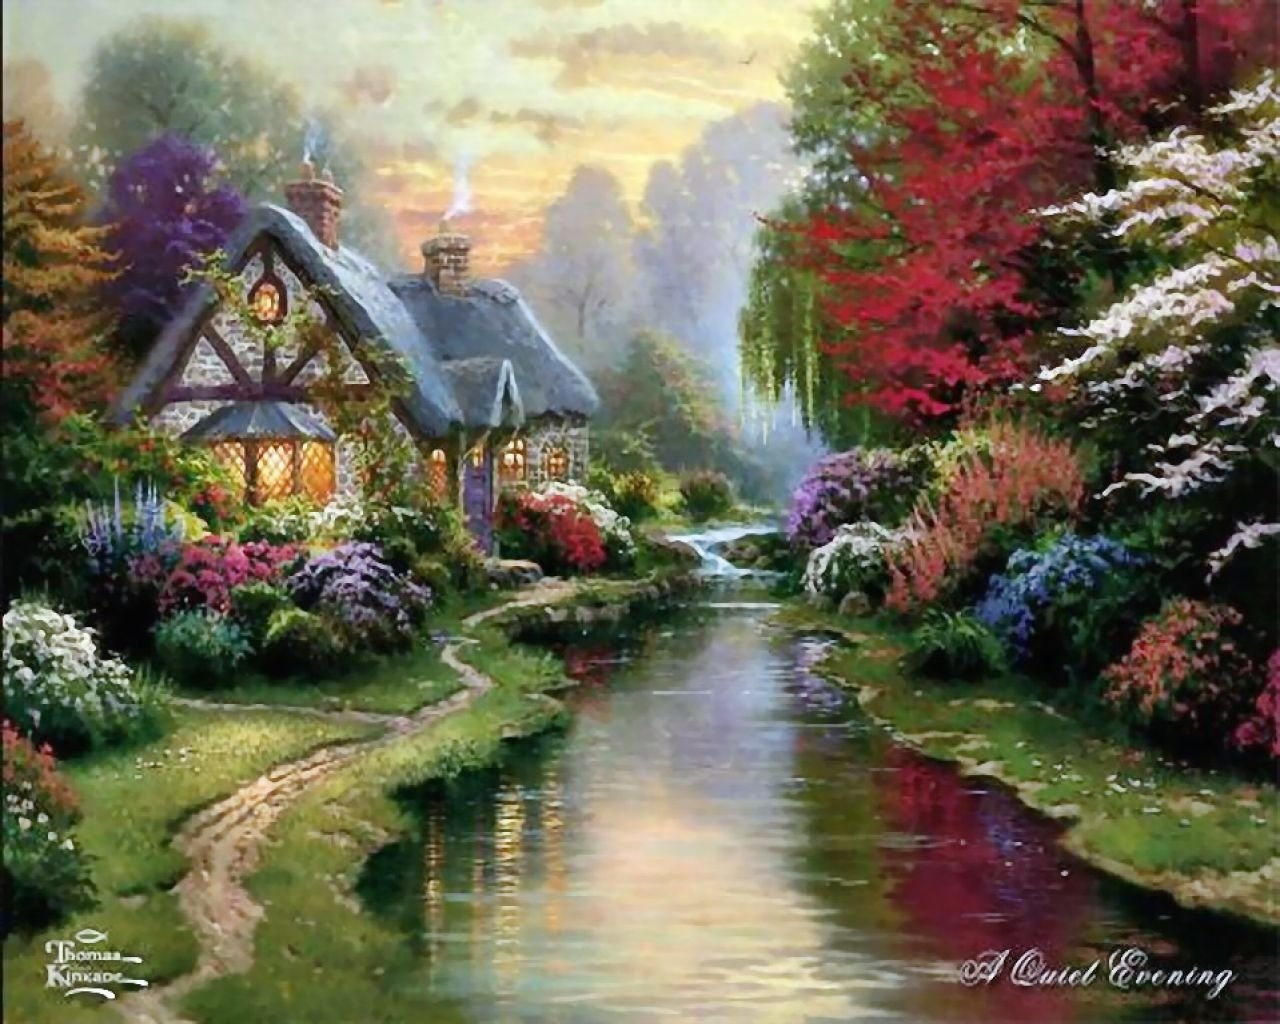 painting of a house next to a river